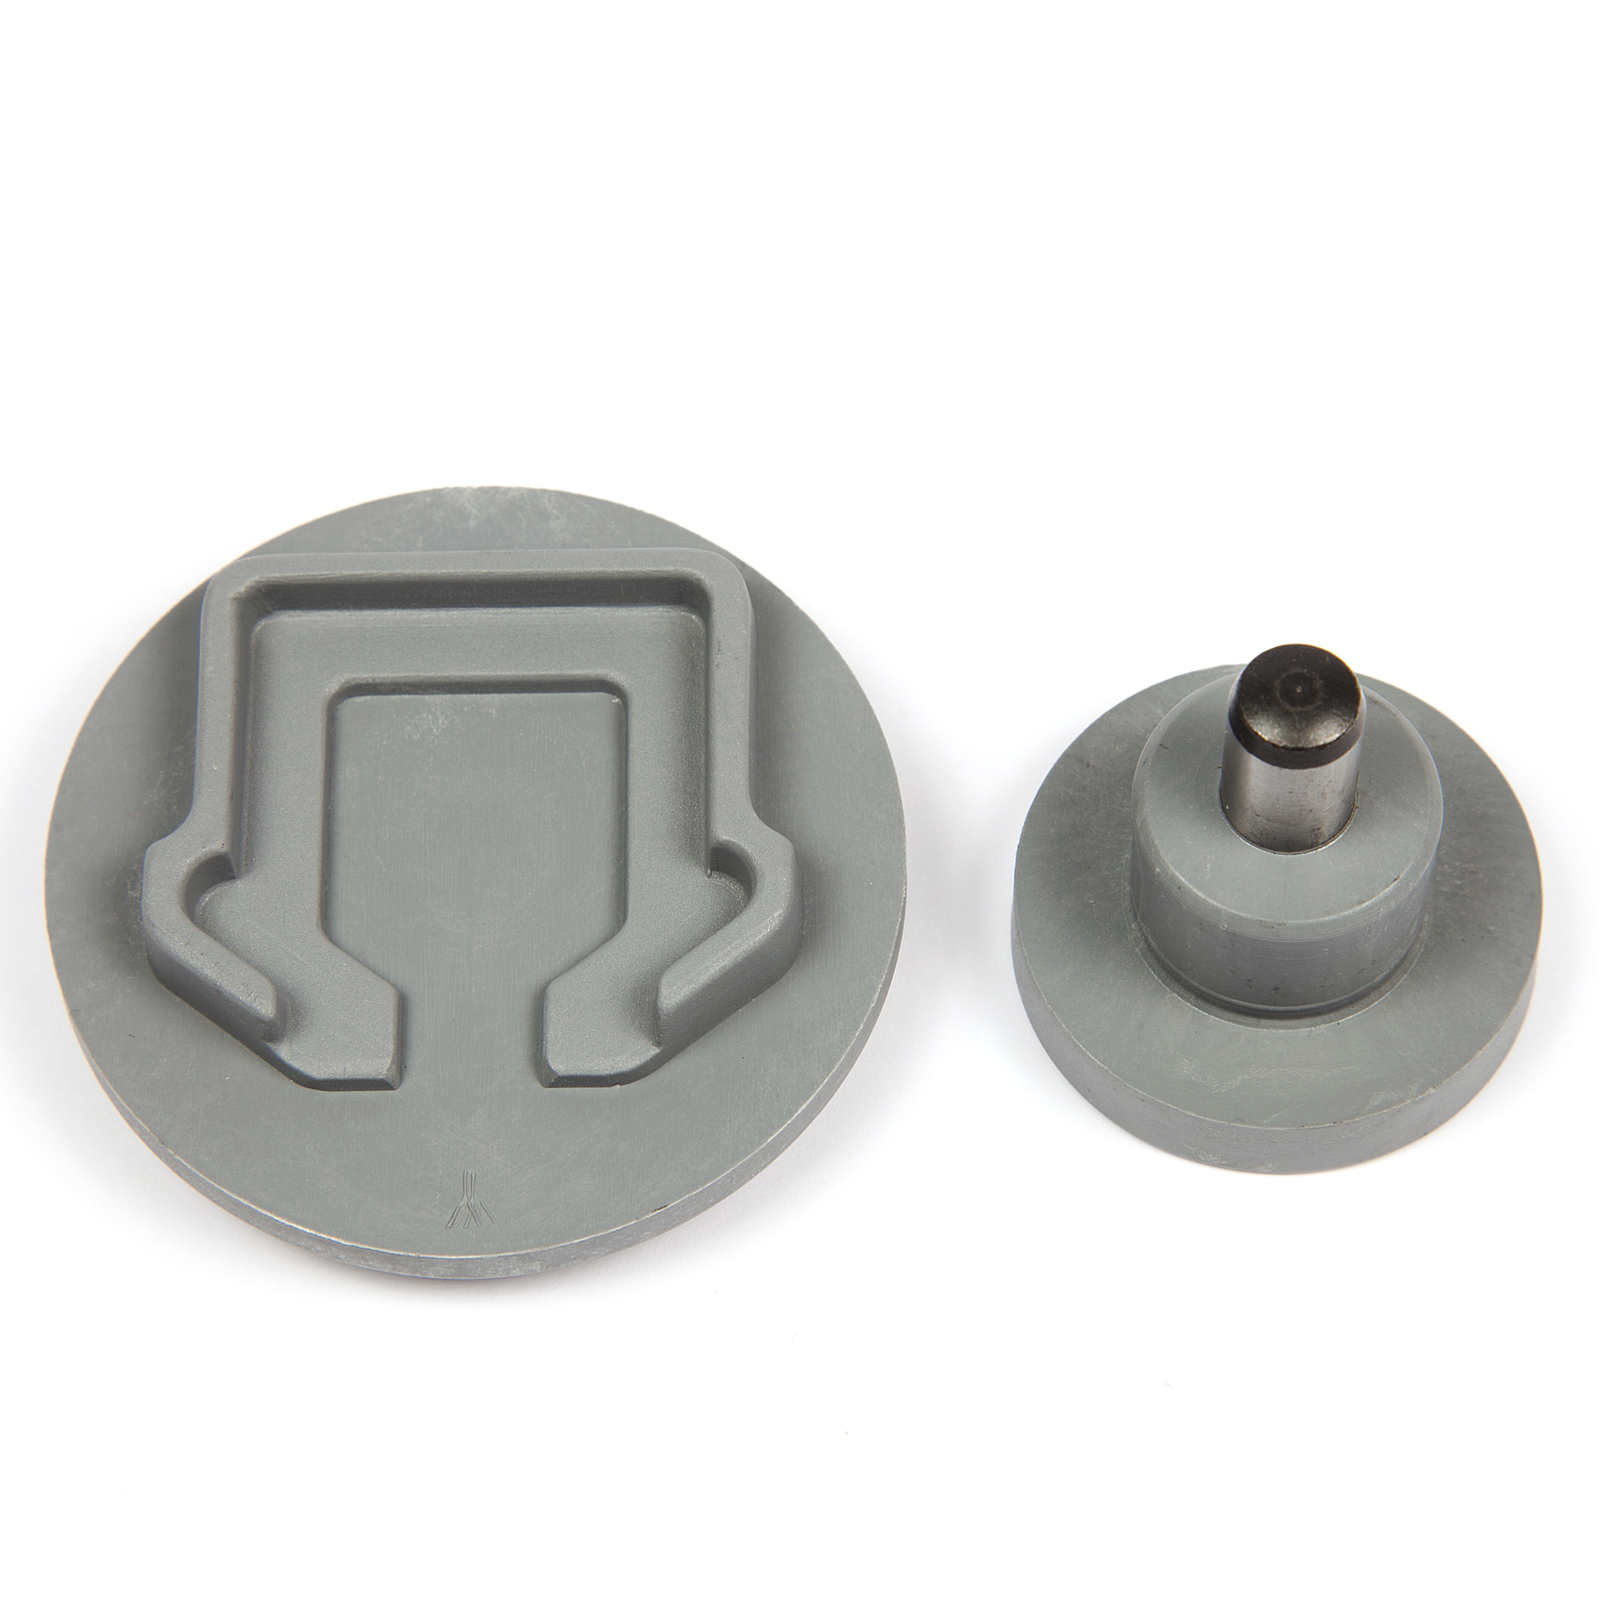 35mm x 33mm Mini House Shaped C25 Keyringfab Assembly Tool to suit MY-D Keyring (UM-MY)